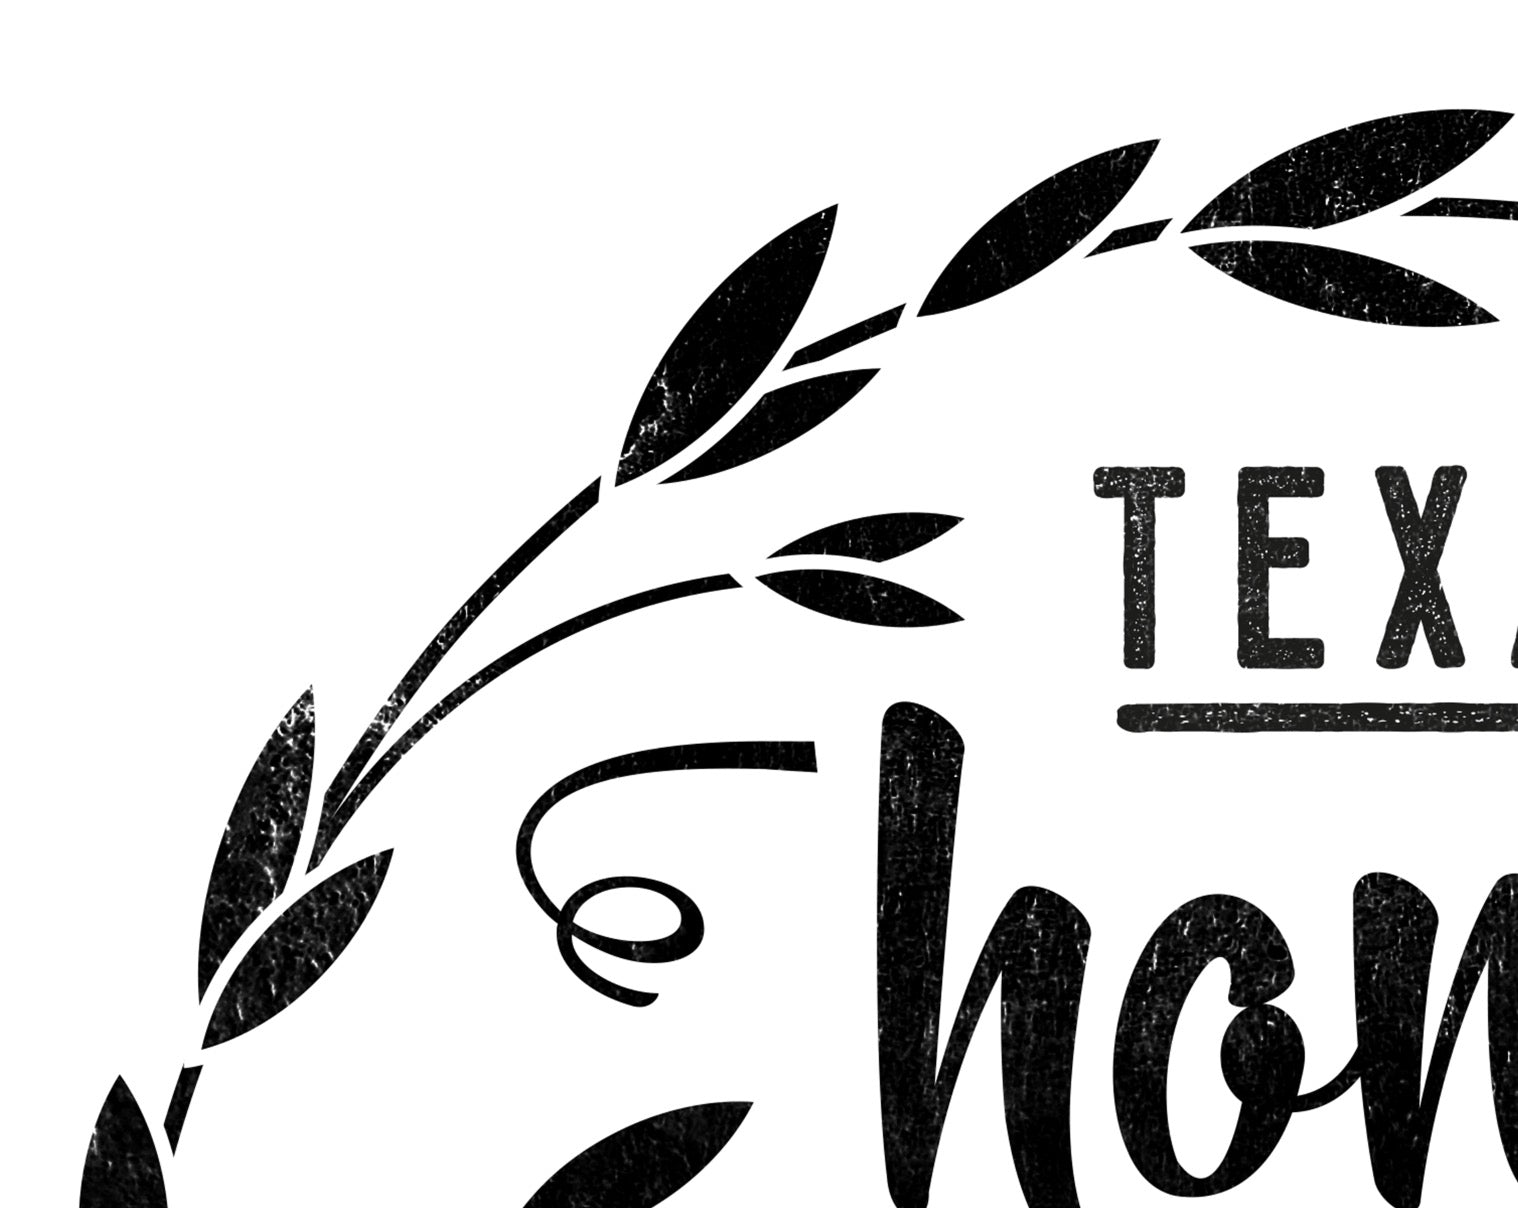 photo about Home Sweet Home Printable named Texas - Property Cute Residence Printable Artwork Pion Fury Prints